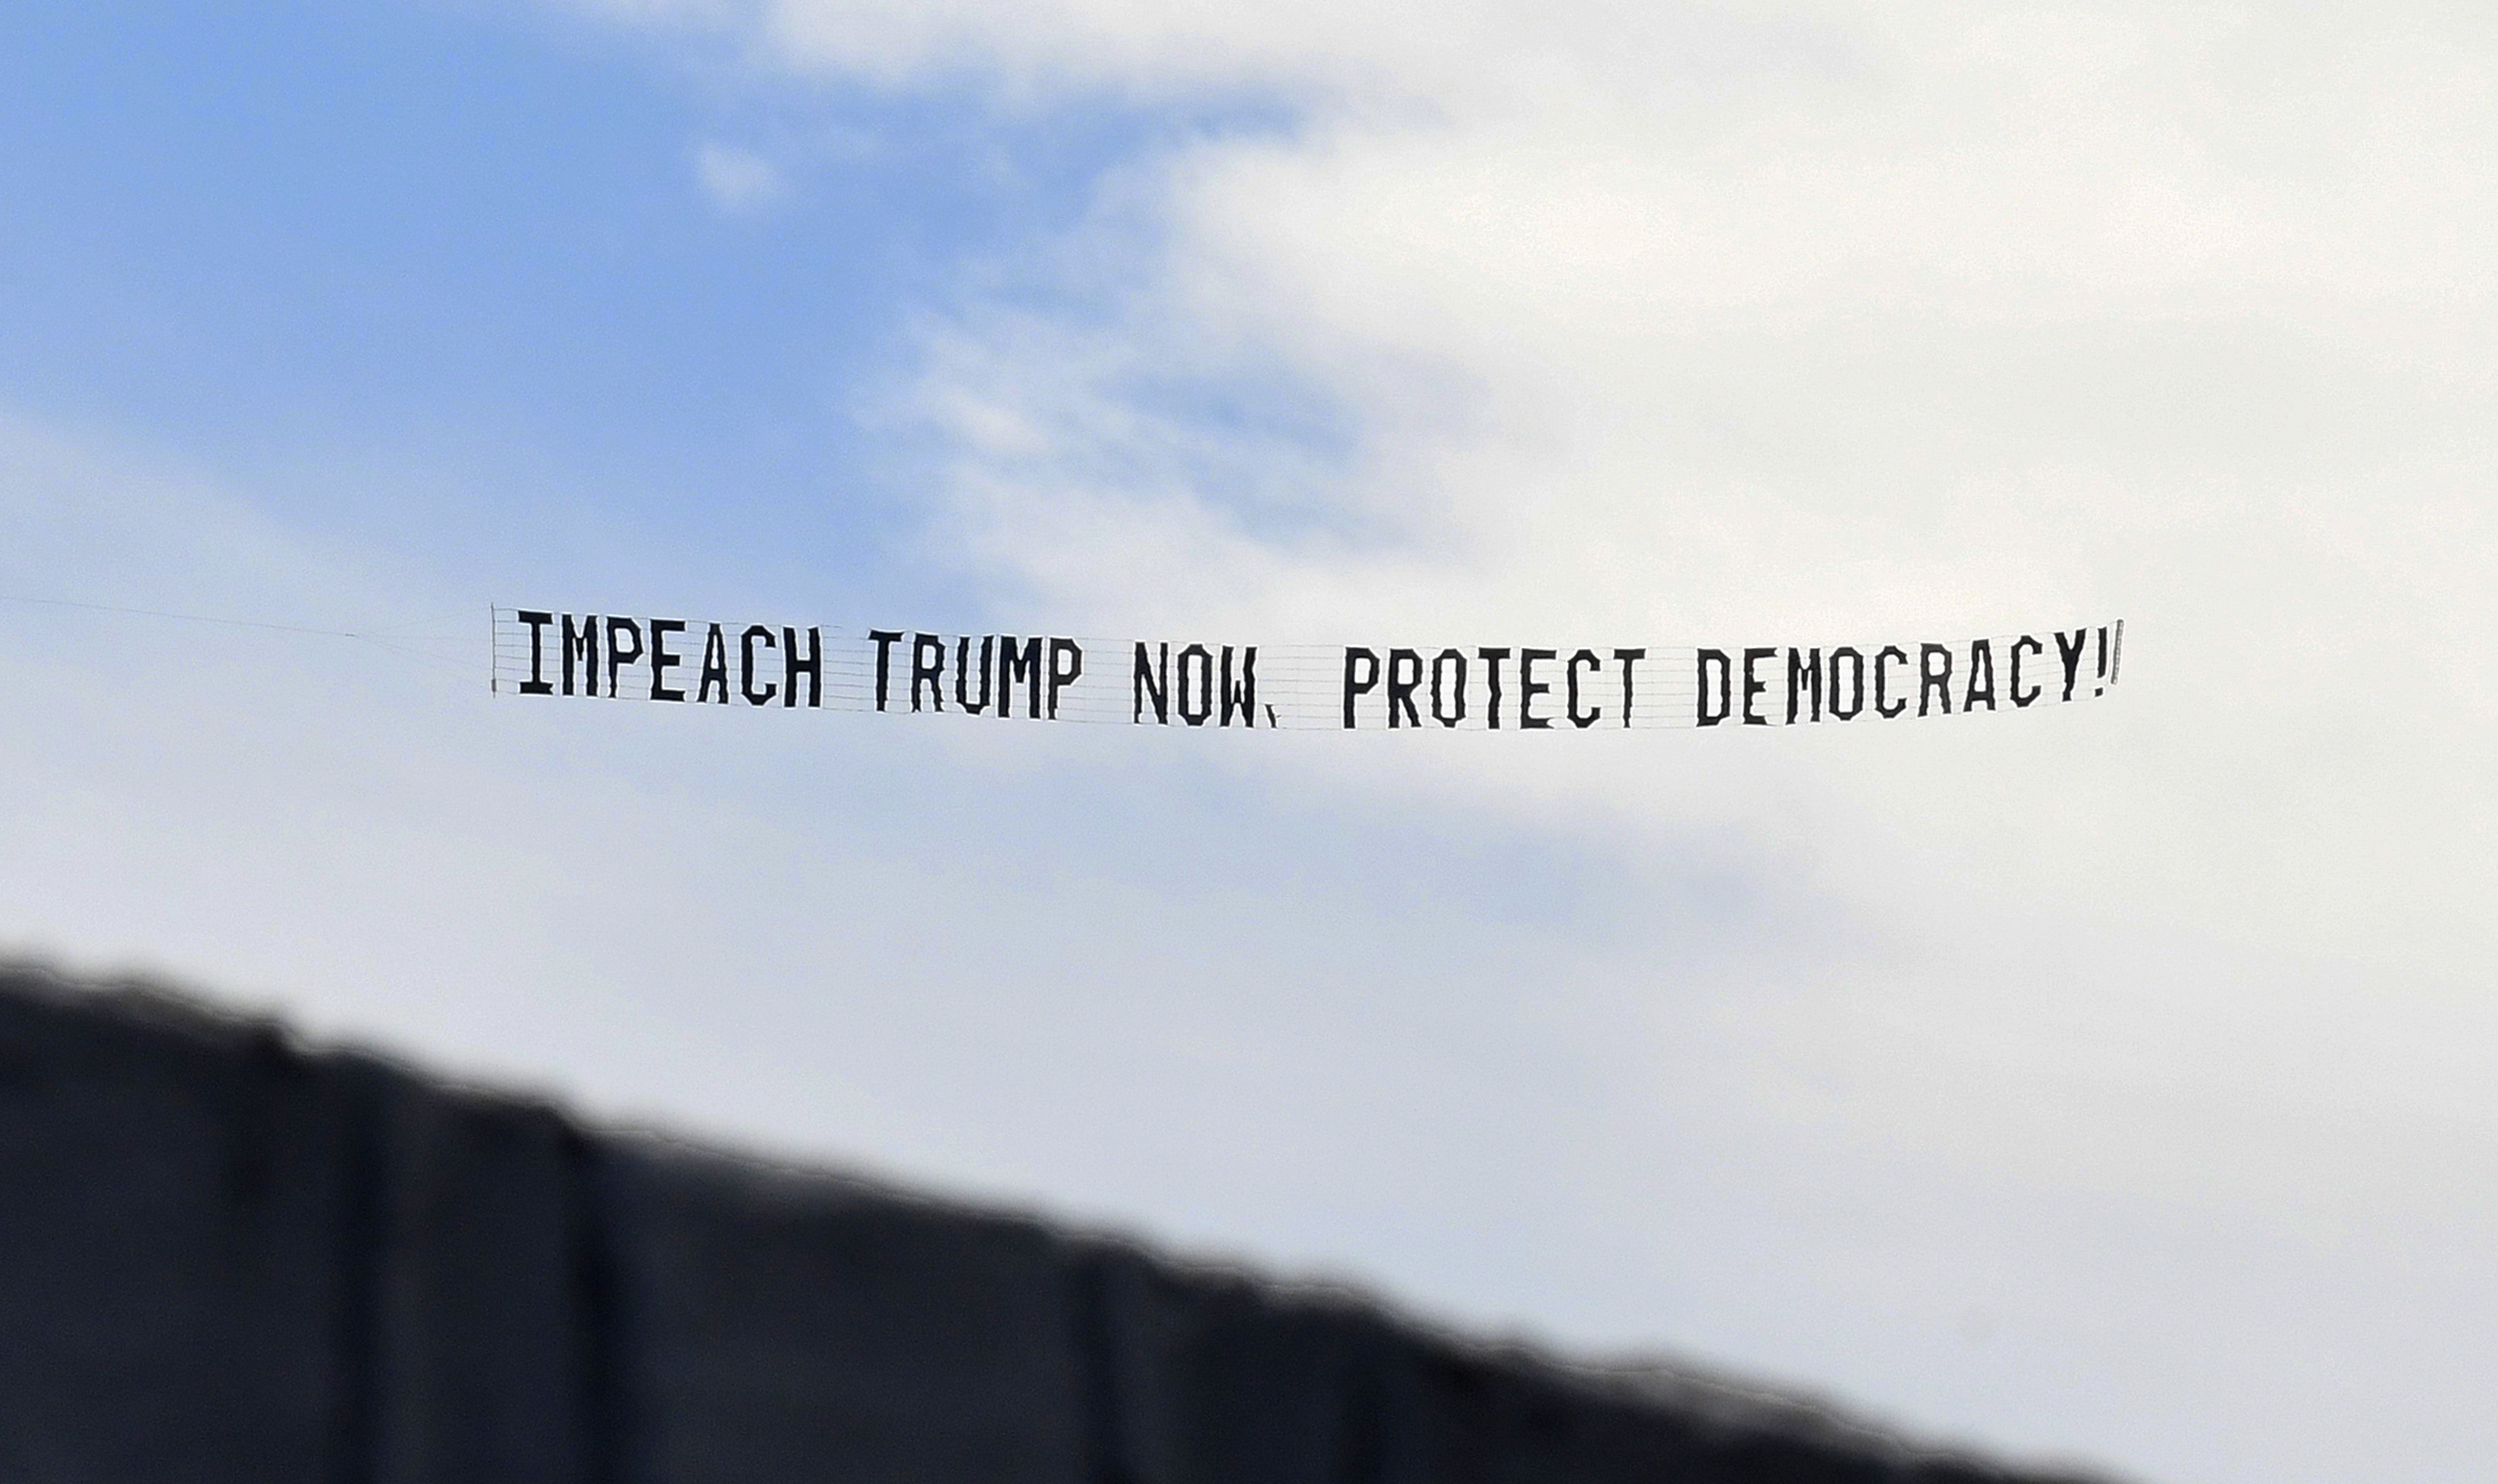 ORLANDO, FLORIDA, UNITED STATES - 2021/01/07: A banner towed by a plane calls for the impeachment of U.S. President Donald Trump.  A day after a pro-Trump mob stormed the U.S. Capitol, members of the House Judiciary Committee have announced articles of impeachment for President Donald Trump, alleging he will remain a threat to national security, democracy and the Constitution if he is allowed to remain in office for two more weeks. (Photo by Paul Hennessy/SOPA Images/LightRocket via Getty Images)